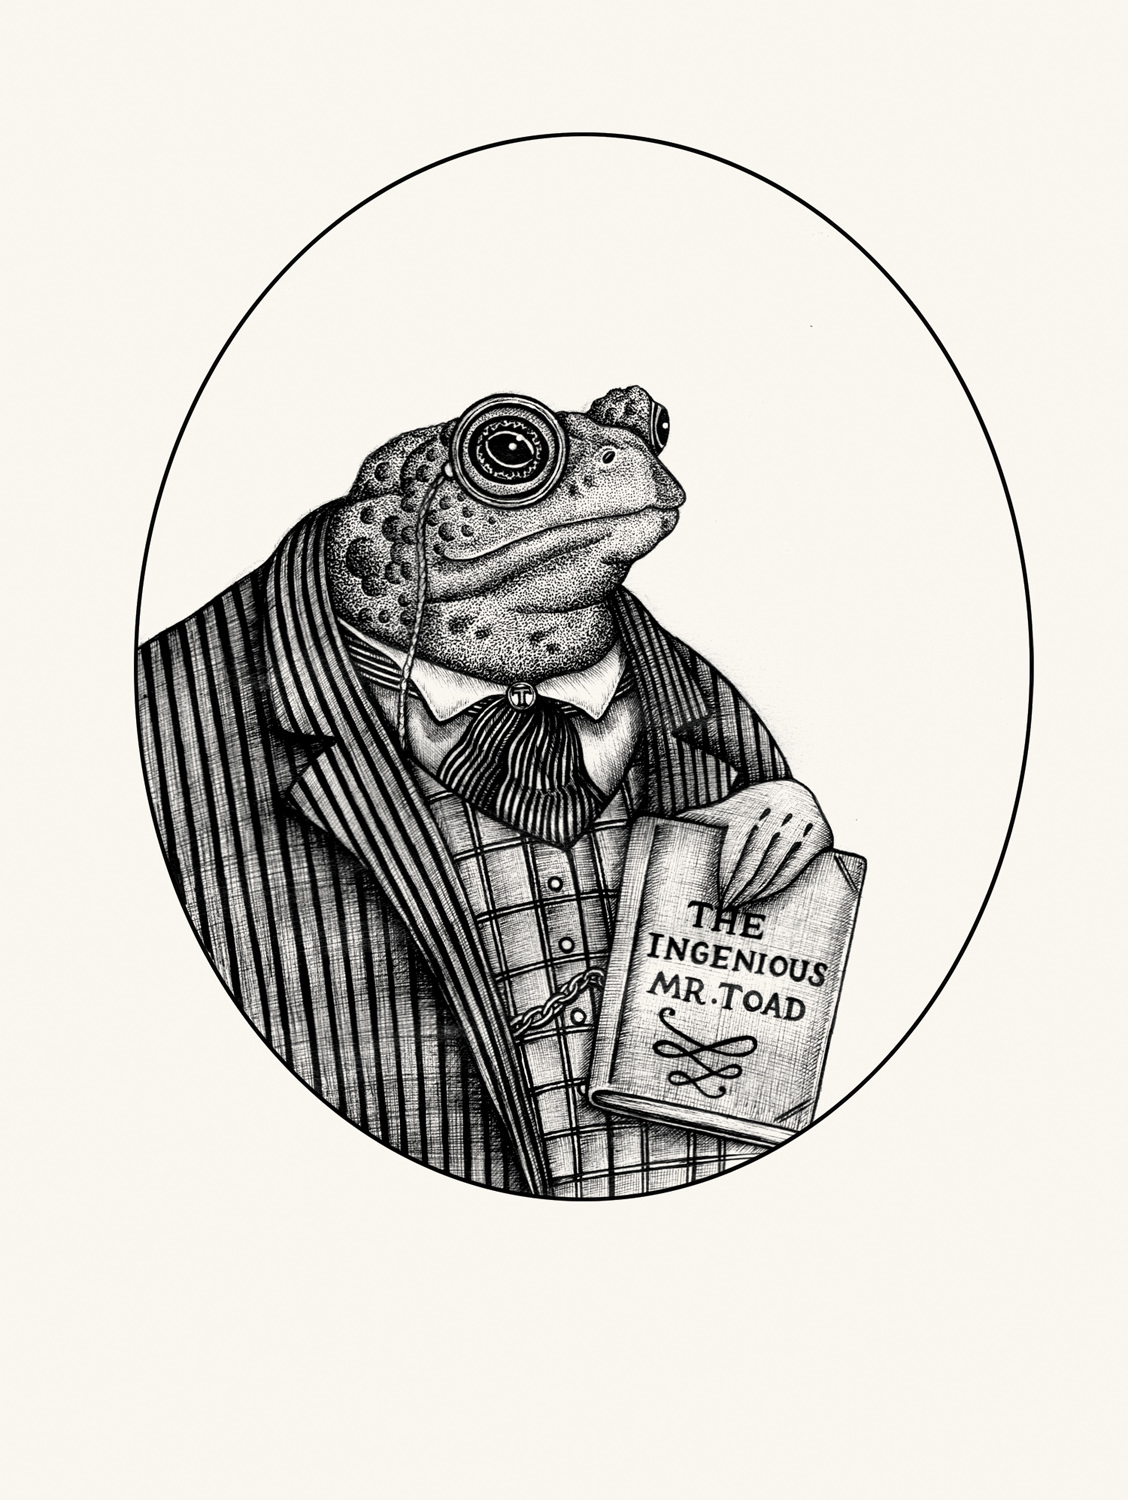 'A Song of Toad' by Kenneth Grahame